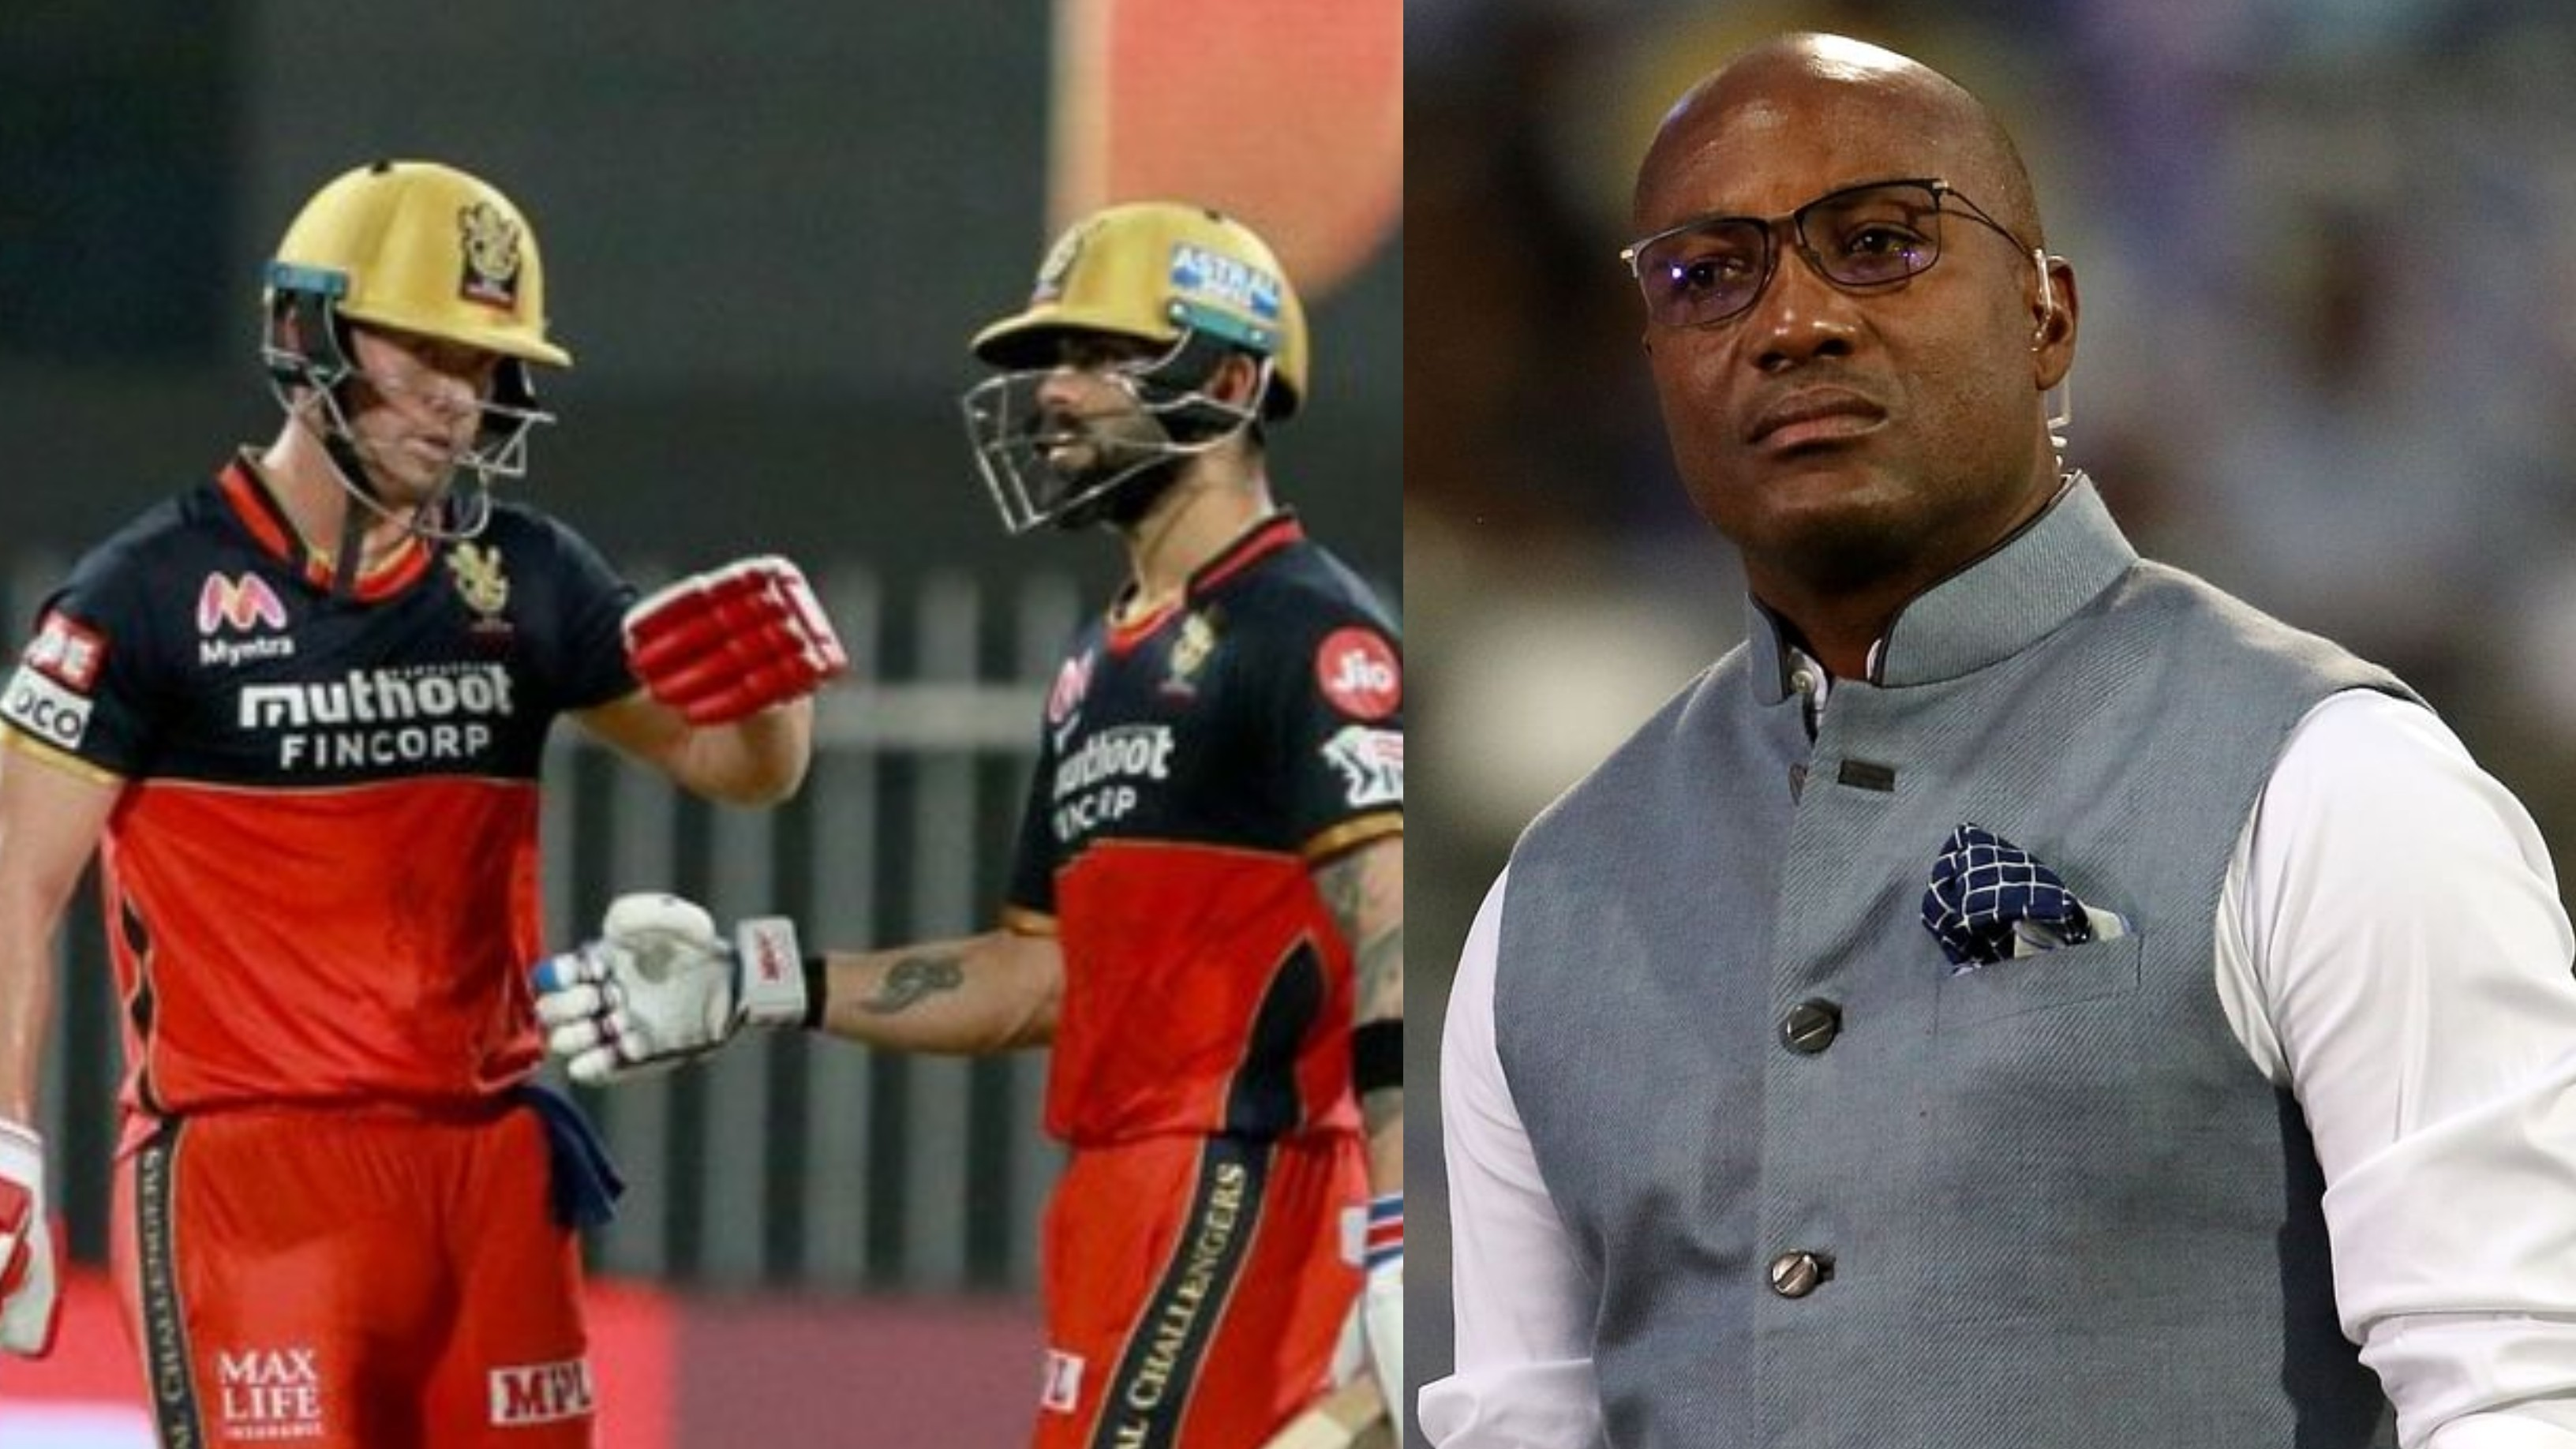 IPL 2020: RCB must realize their over-reliance on Virat Kohli and AB de Villiers, says Brian Lara